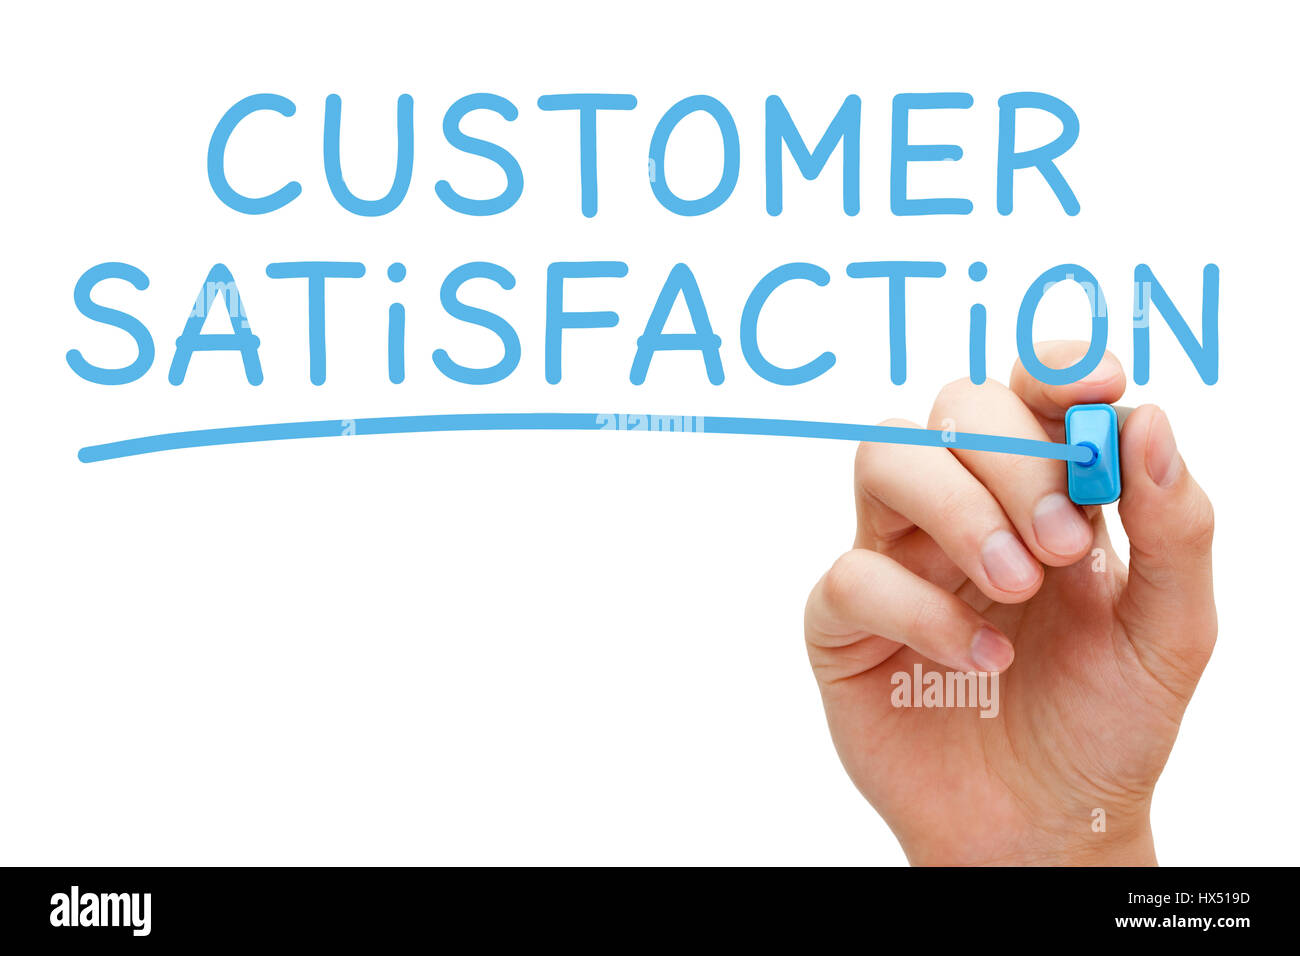 Hand writing Customer Satisfaction with blue marker on transparent glass board. - Stock Image